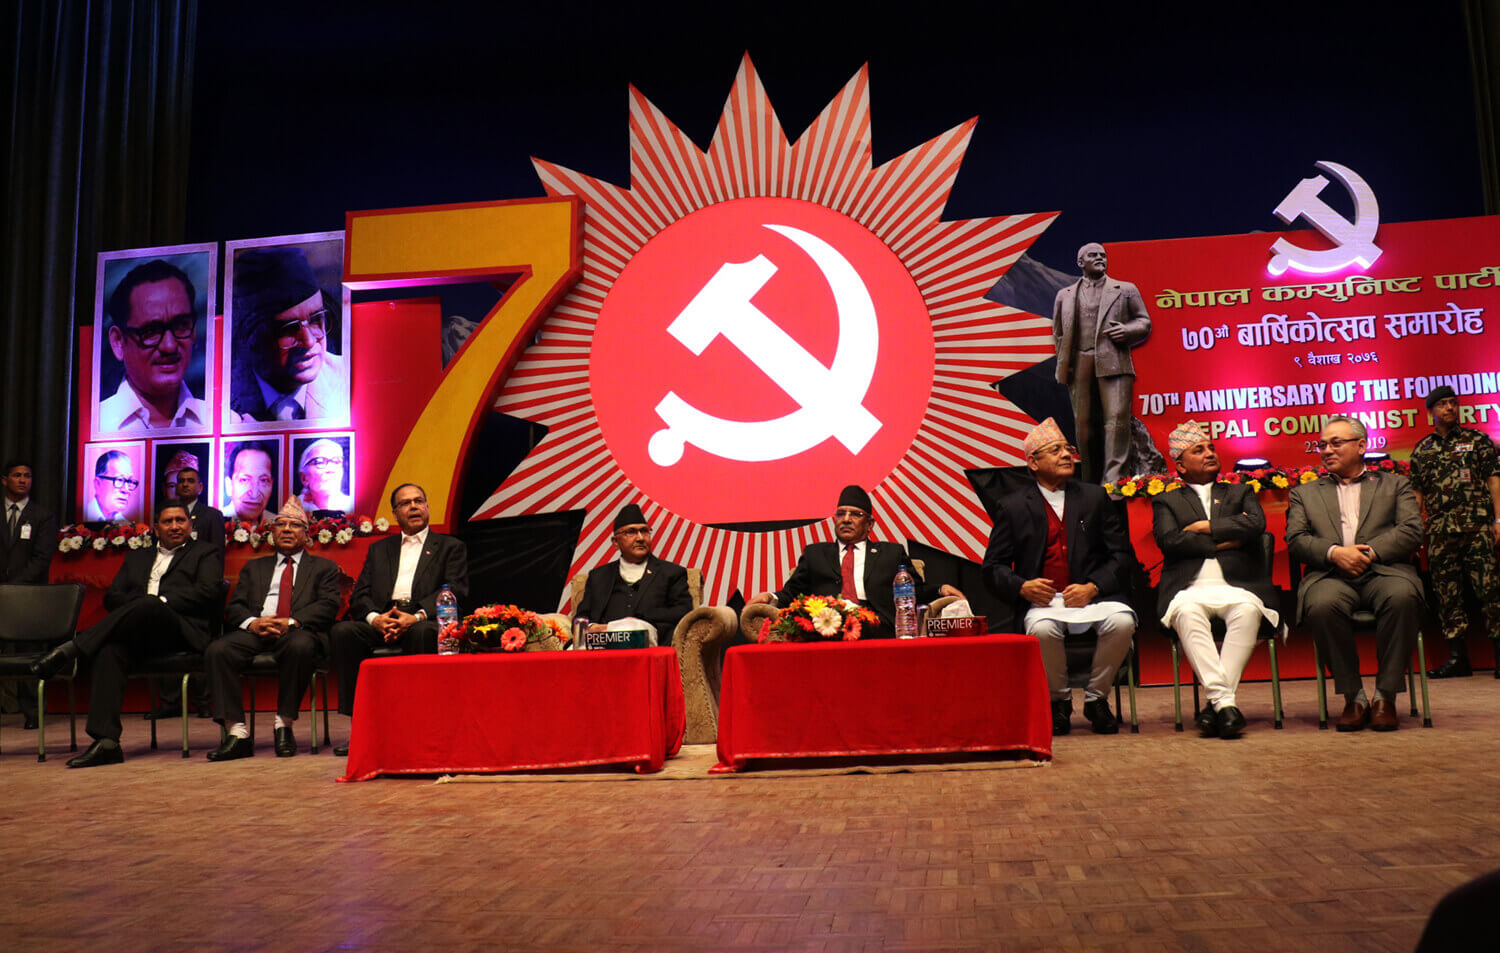 Prime Minister K P Oli, Pushpa Kamal Dahal and other top leaders of Nepal Communist Party attend an event to make the 70th anniversary of the party in Kathmandu on Monday.